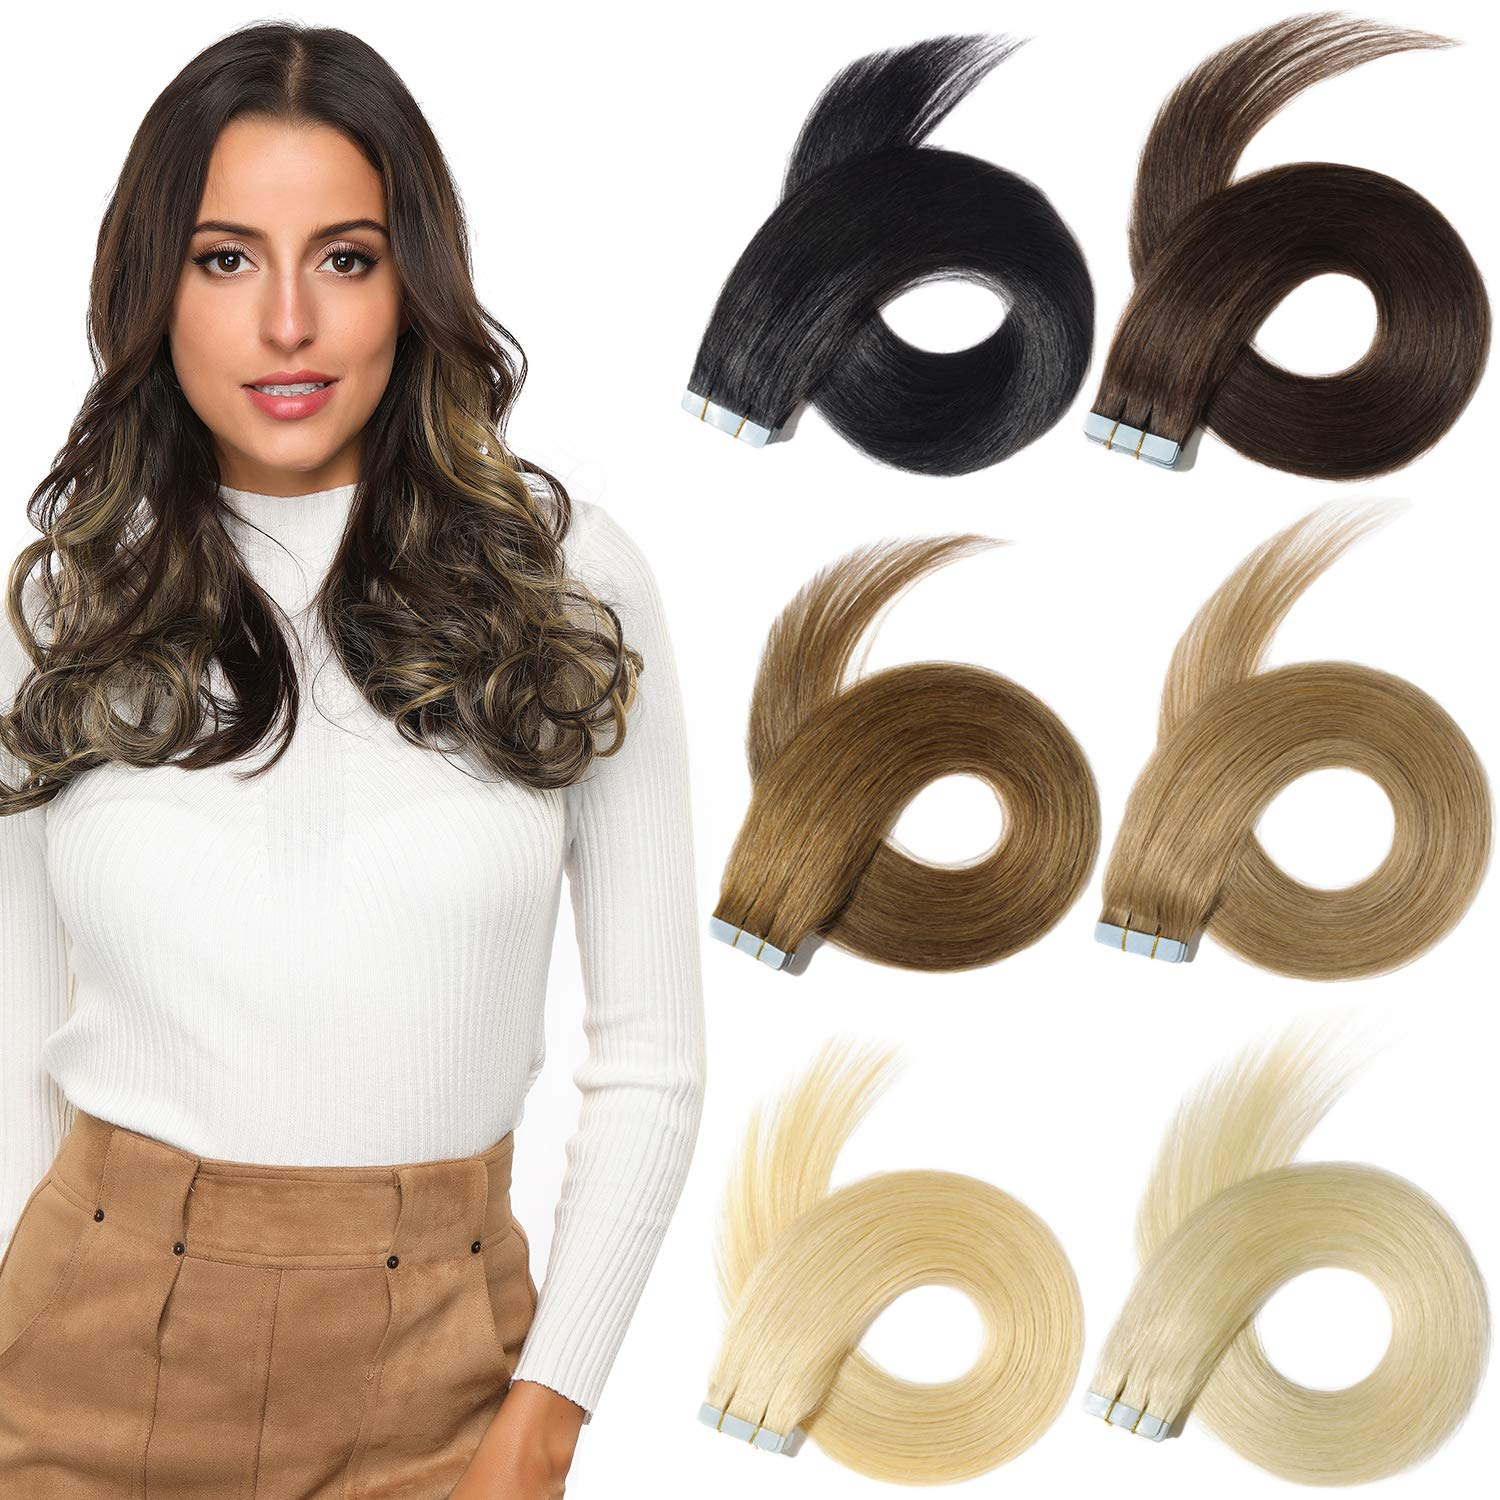 ROSEBUD Tape in Hair Extensions Import Super beauty product restock quality top Wef REMY Skin Human Secure